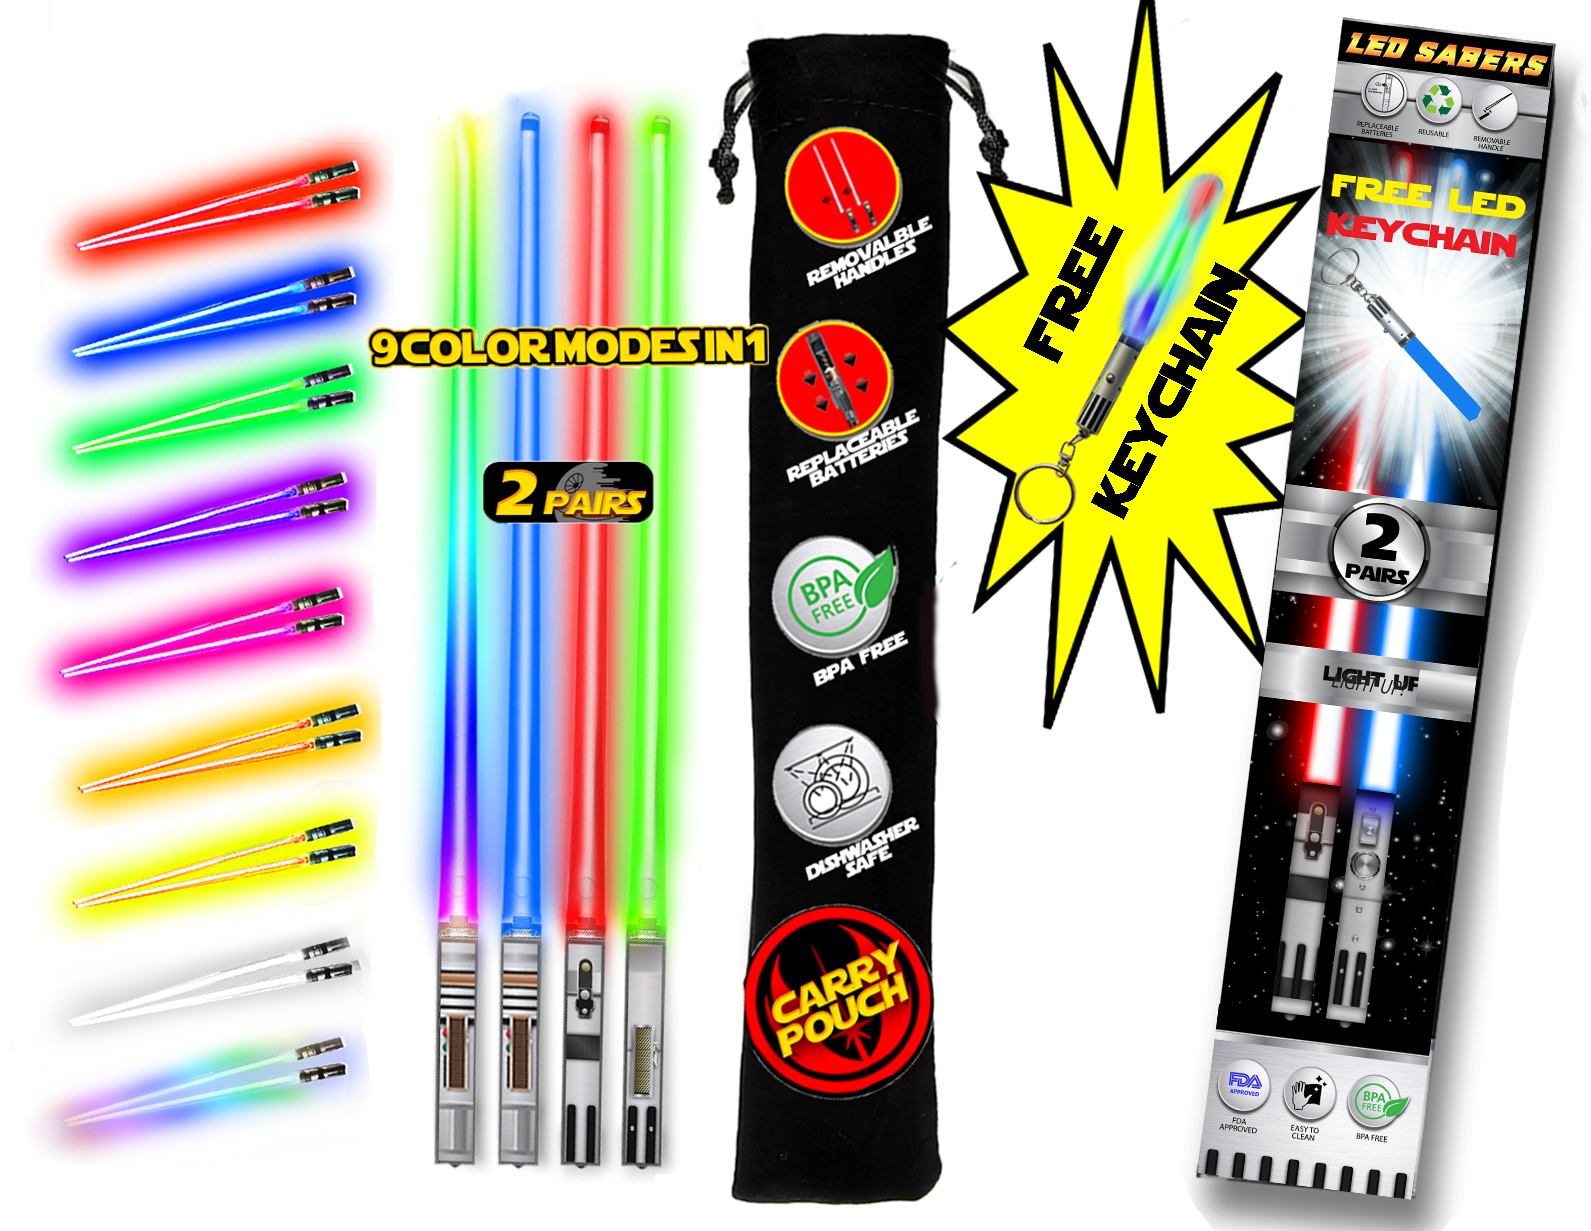 LIGHTSABER CHOPSTICKS LIGHT UP STAR WARS LED Glowing Light Saber Chop Sticks REUSABLE Sushi Lightup Sabers Removable Handle Dishwasher Safe GIFT BOX CARRY CASE 8 COLOR MODES & FREE KEYCHAIN!